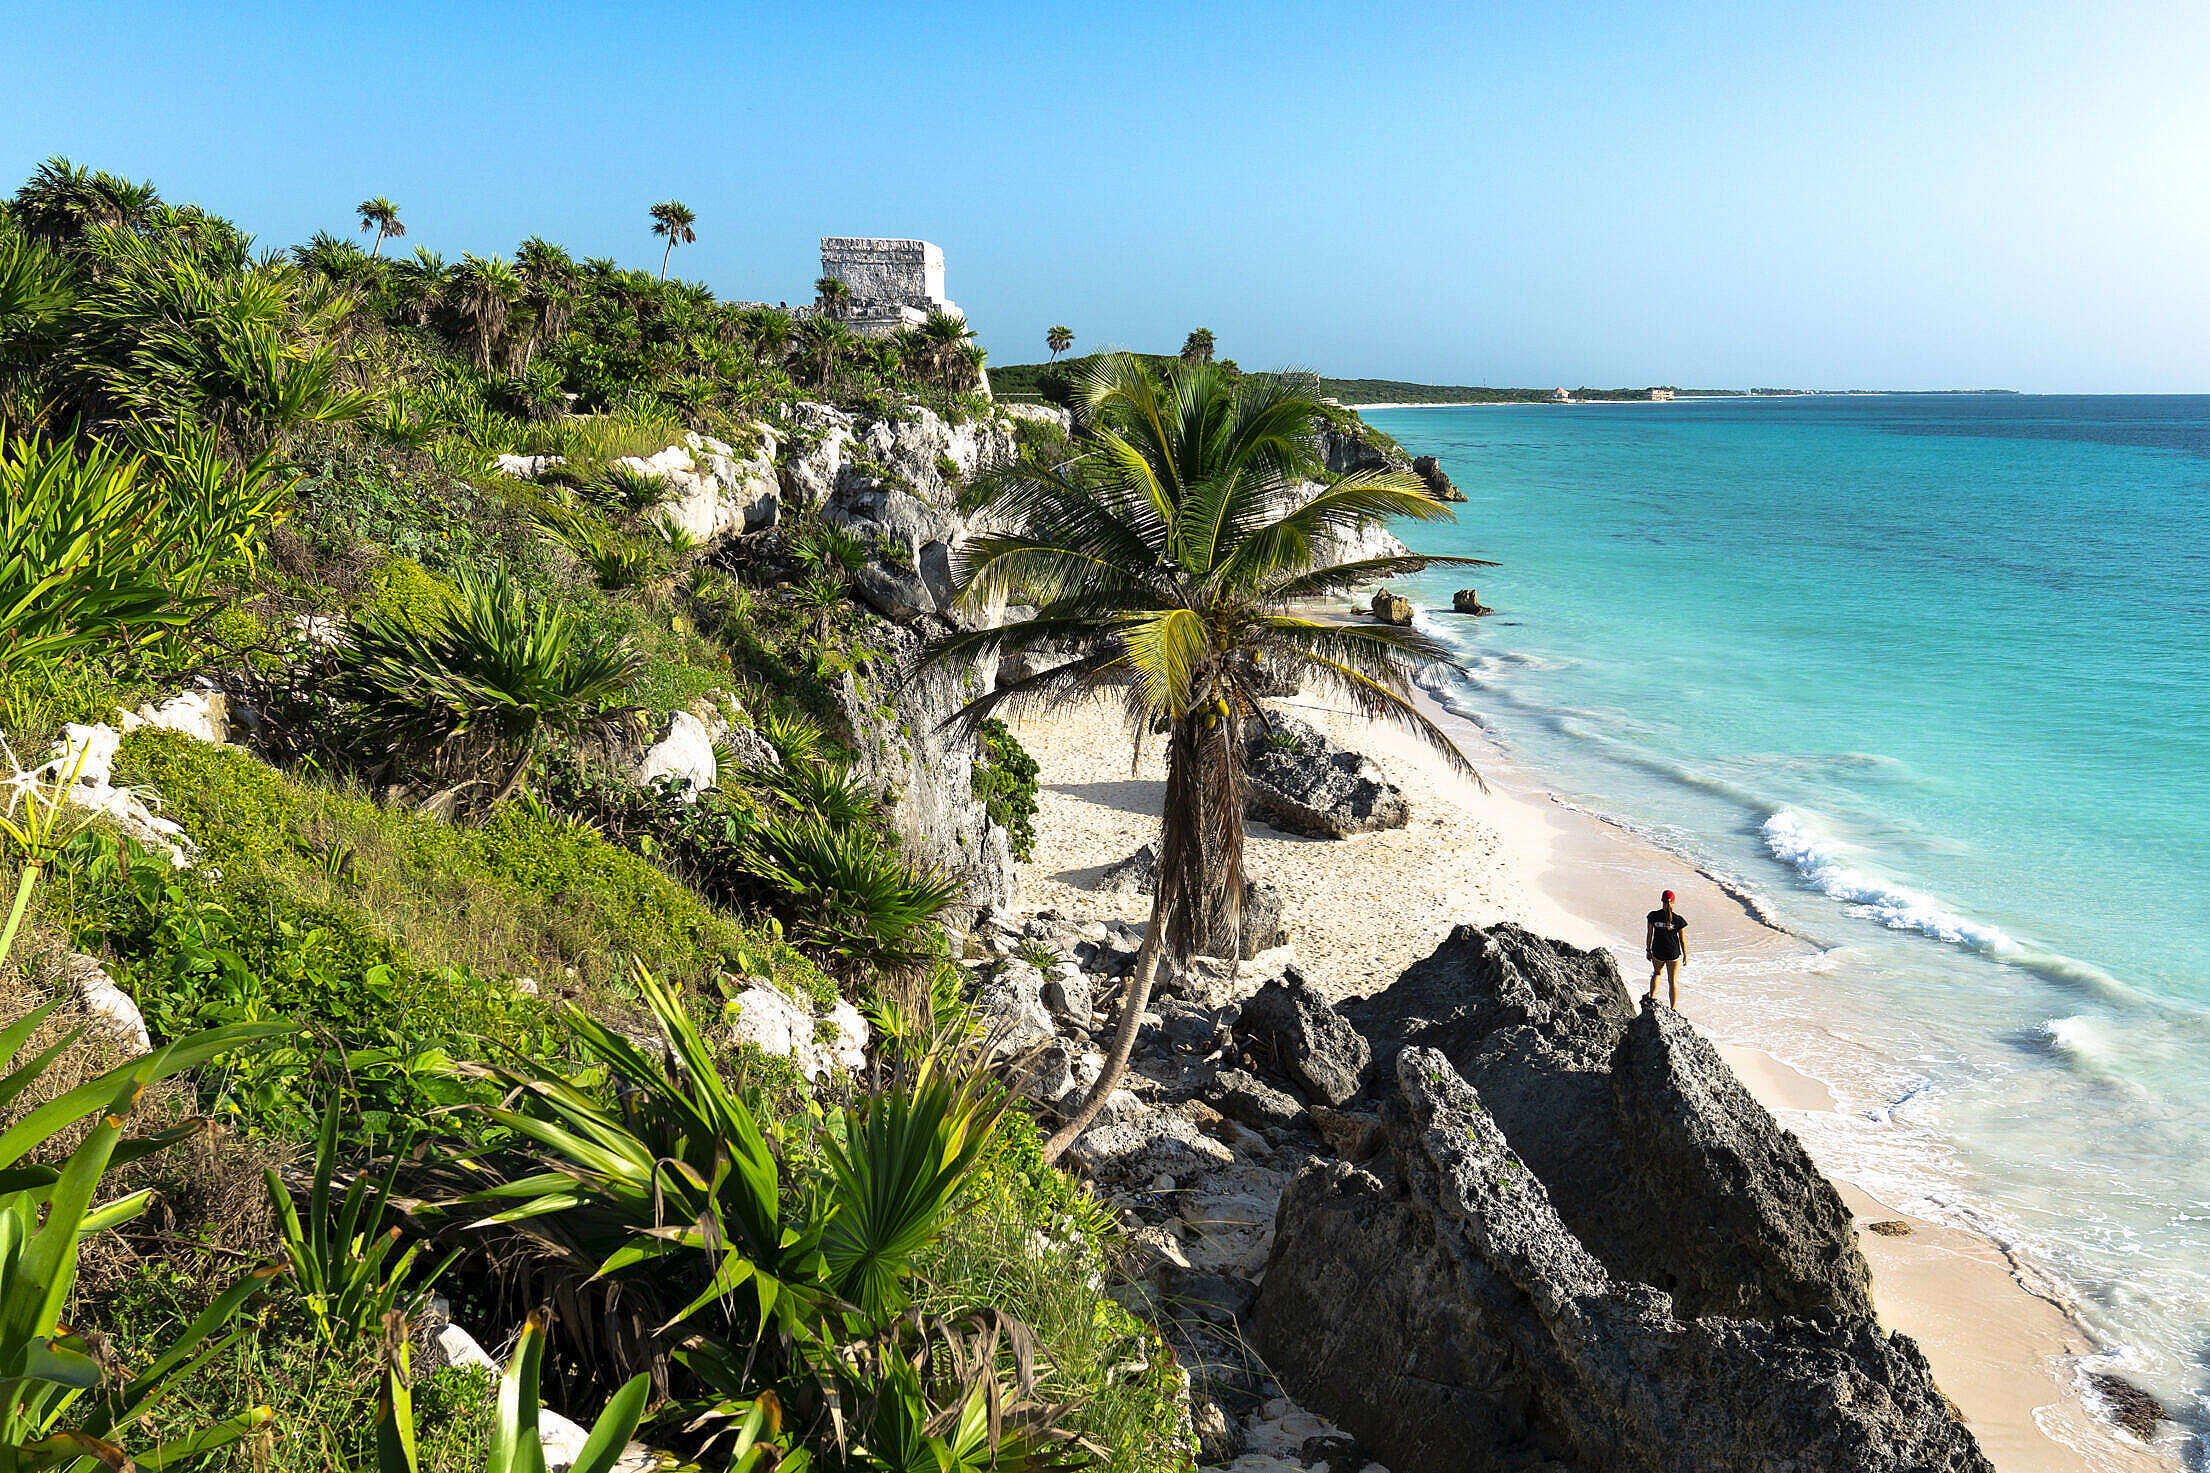 Woman on a Beach near Ruins in Tulum Mexico Free Stock Photo